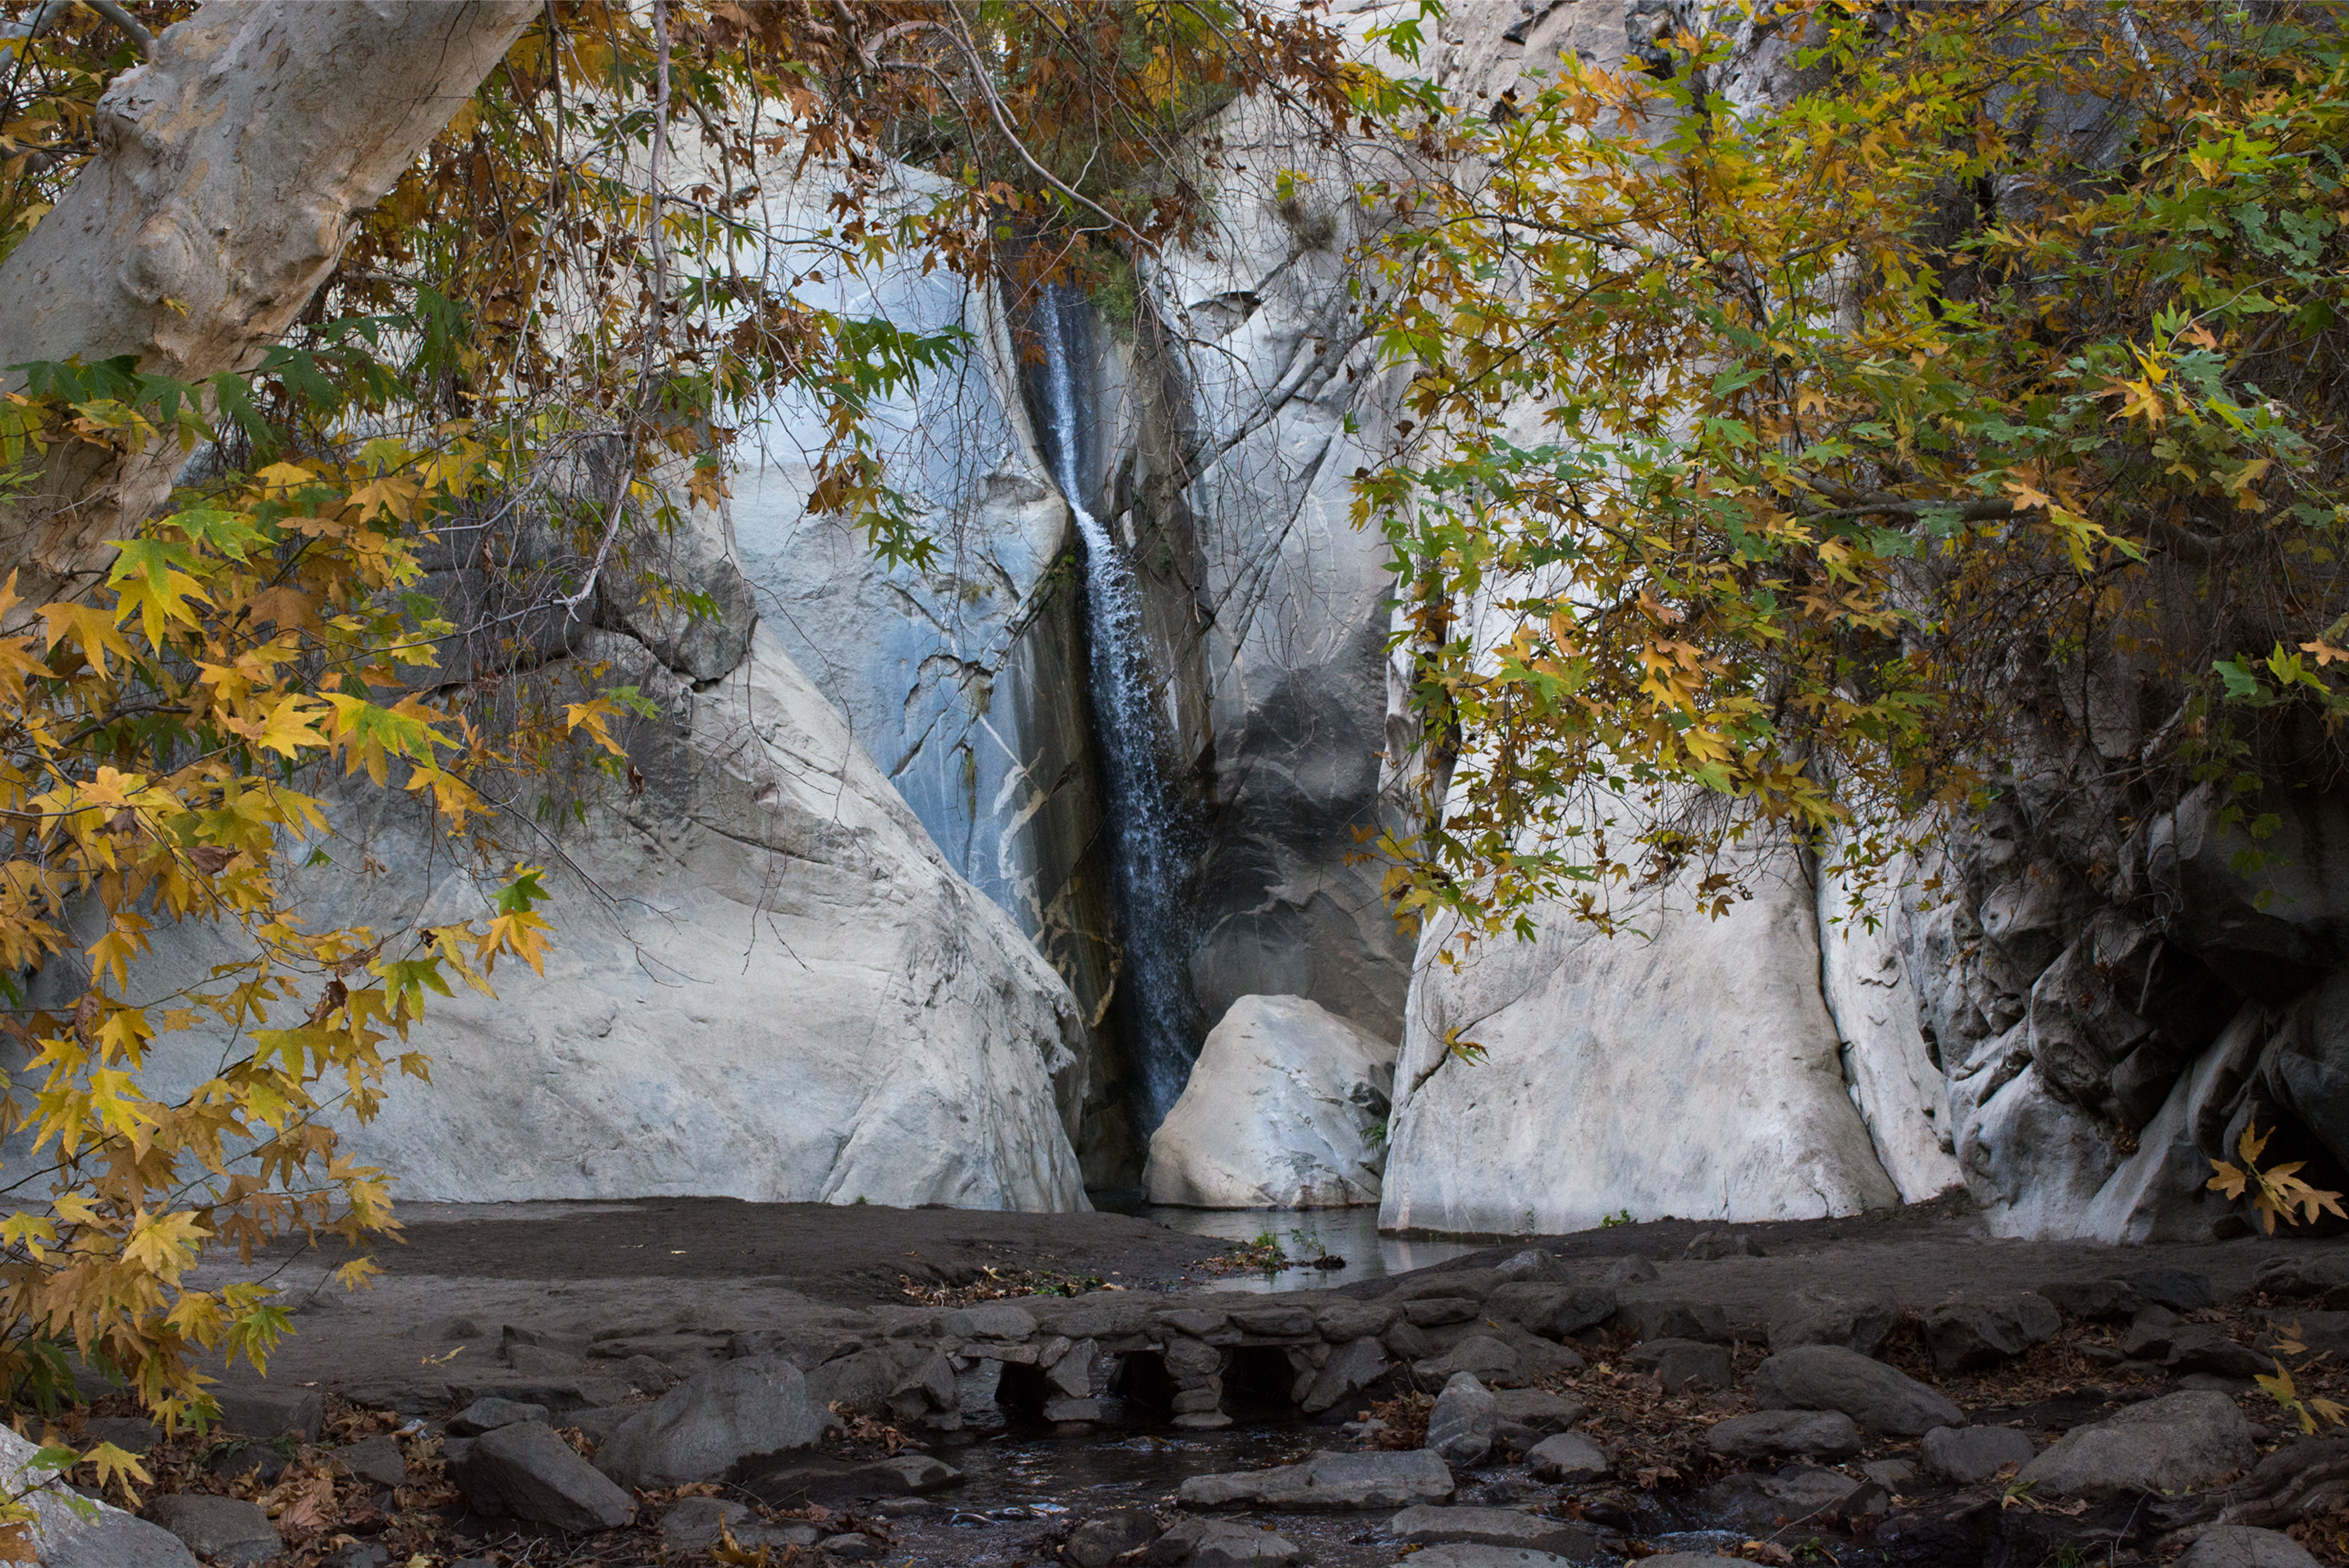 Tahquitz Canyon Waterfall